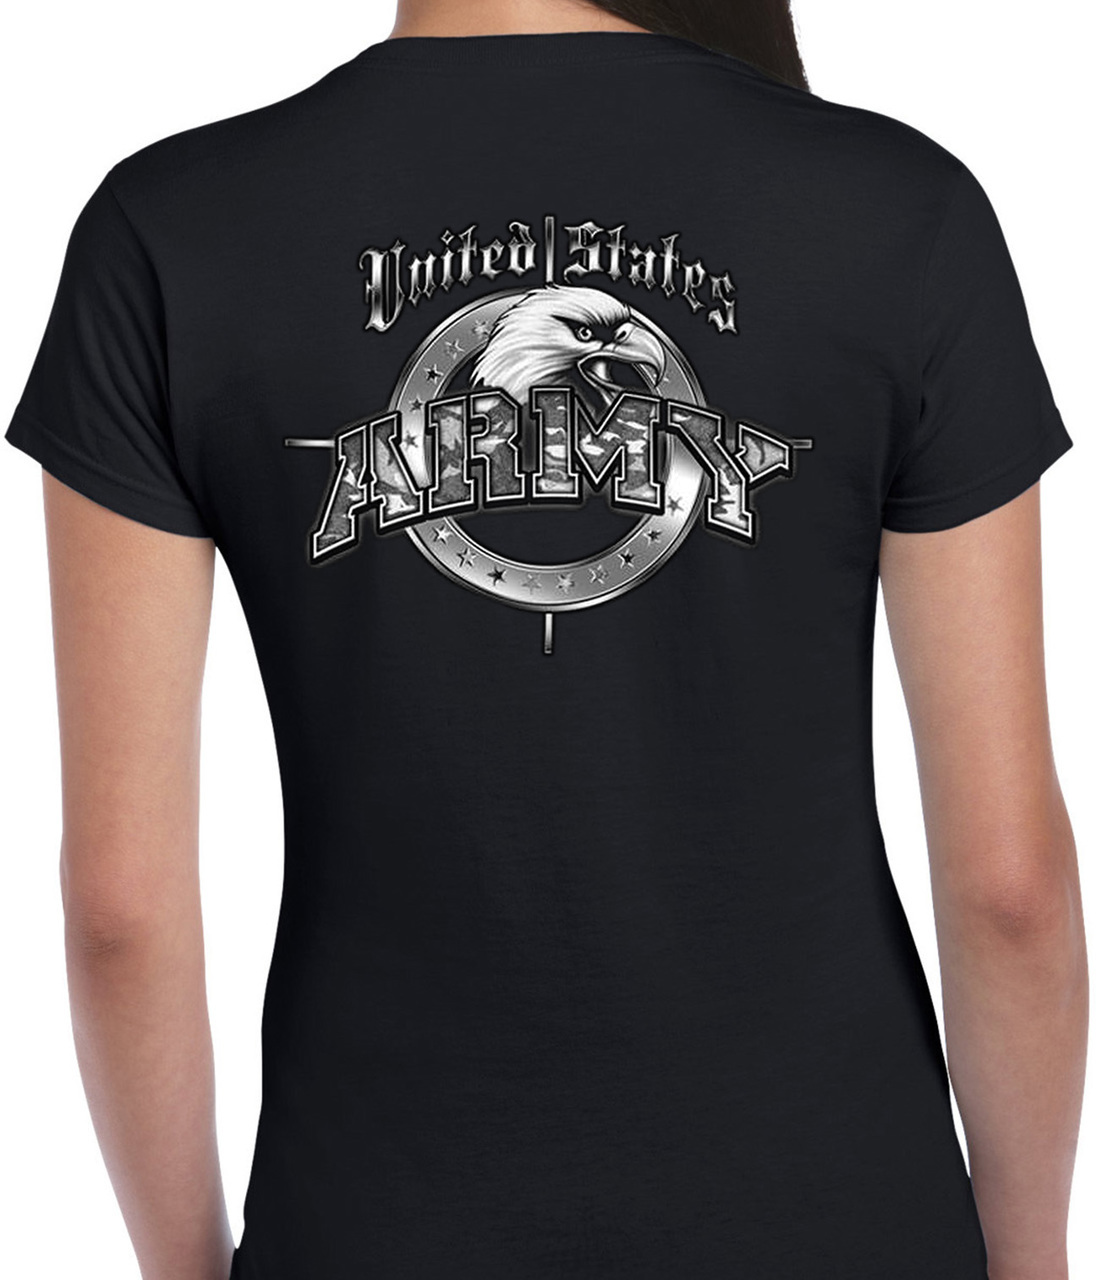 United States Army Eagle T-Shirt